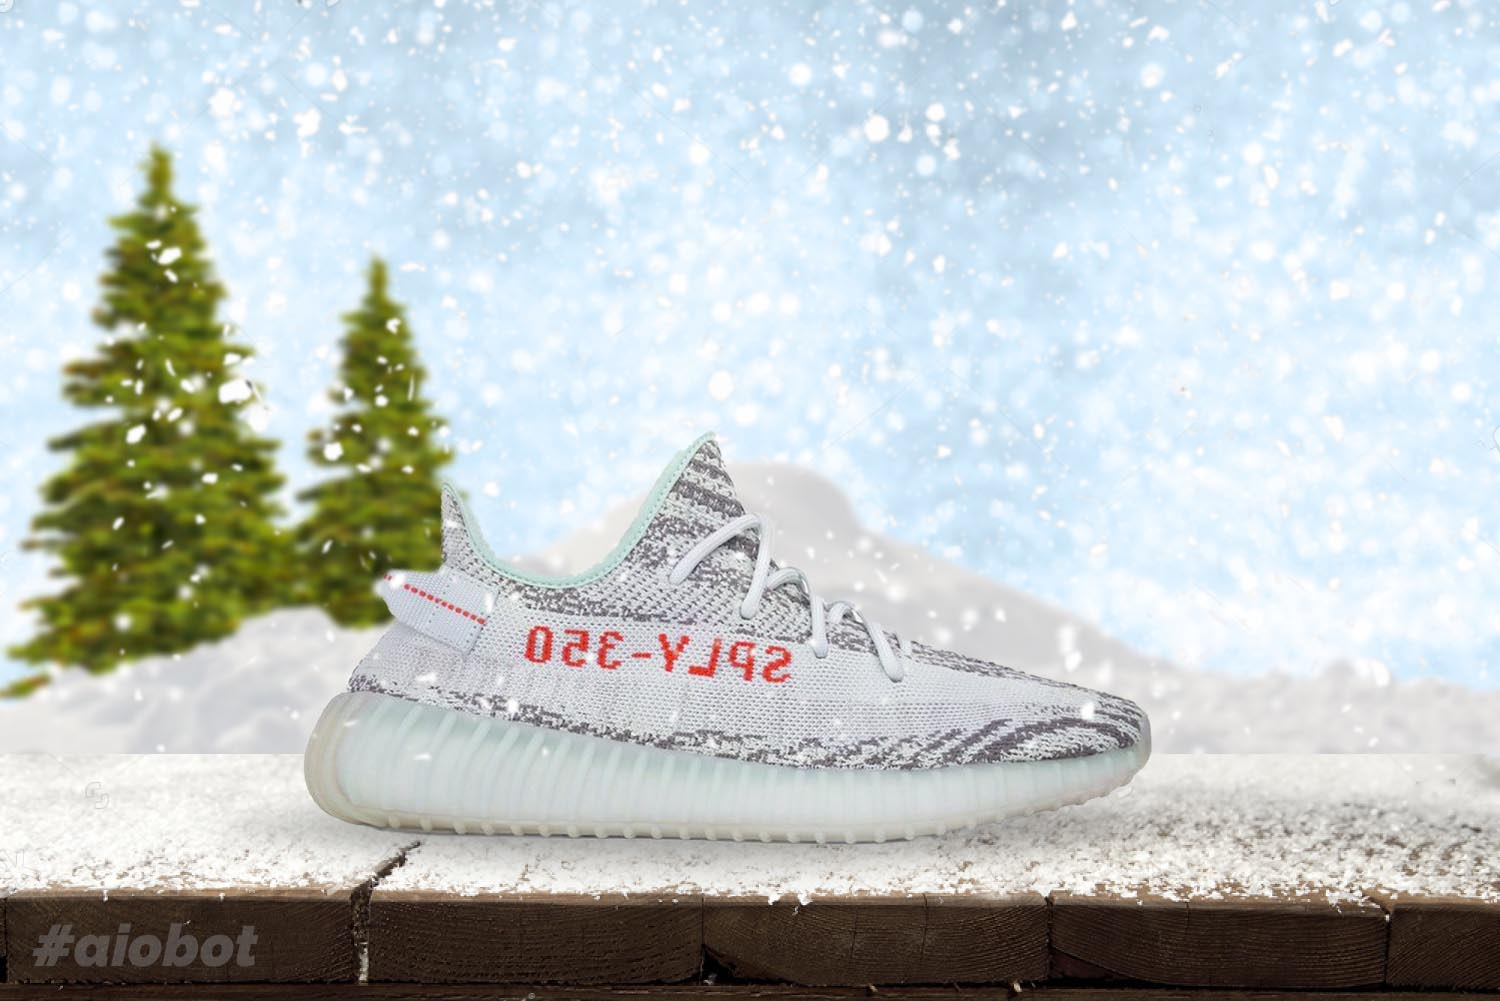 846835655a3b2 The Yeezy Boost Blue Tint  A Sneaker head s last chance